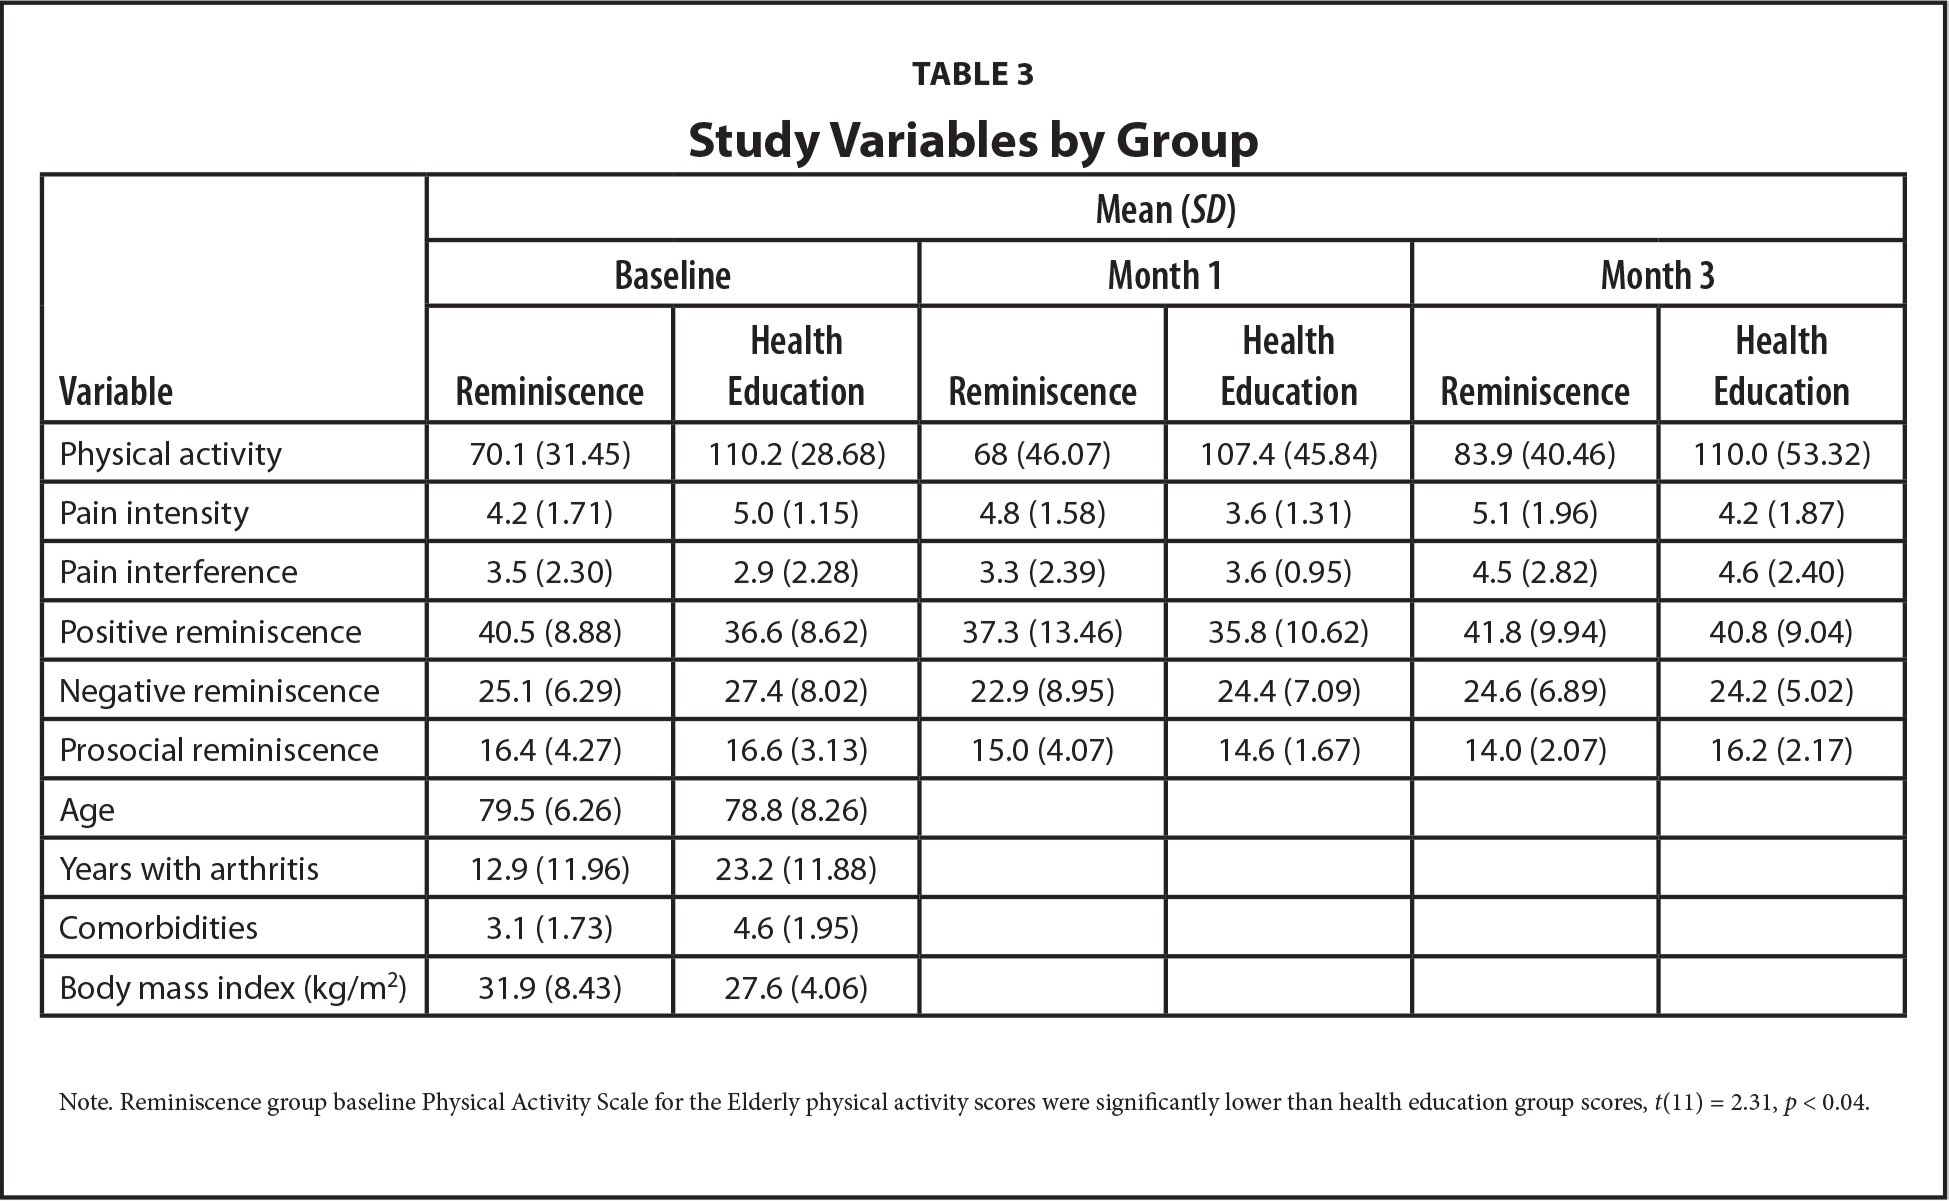 Study Variables by Group